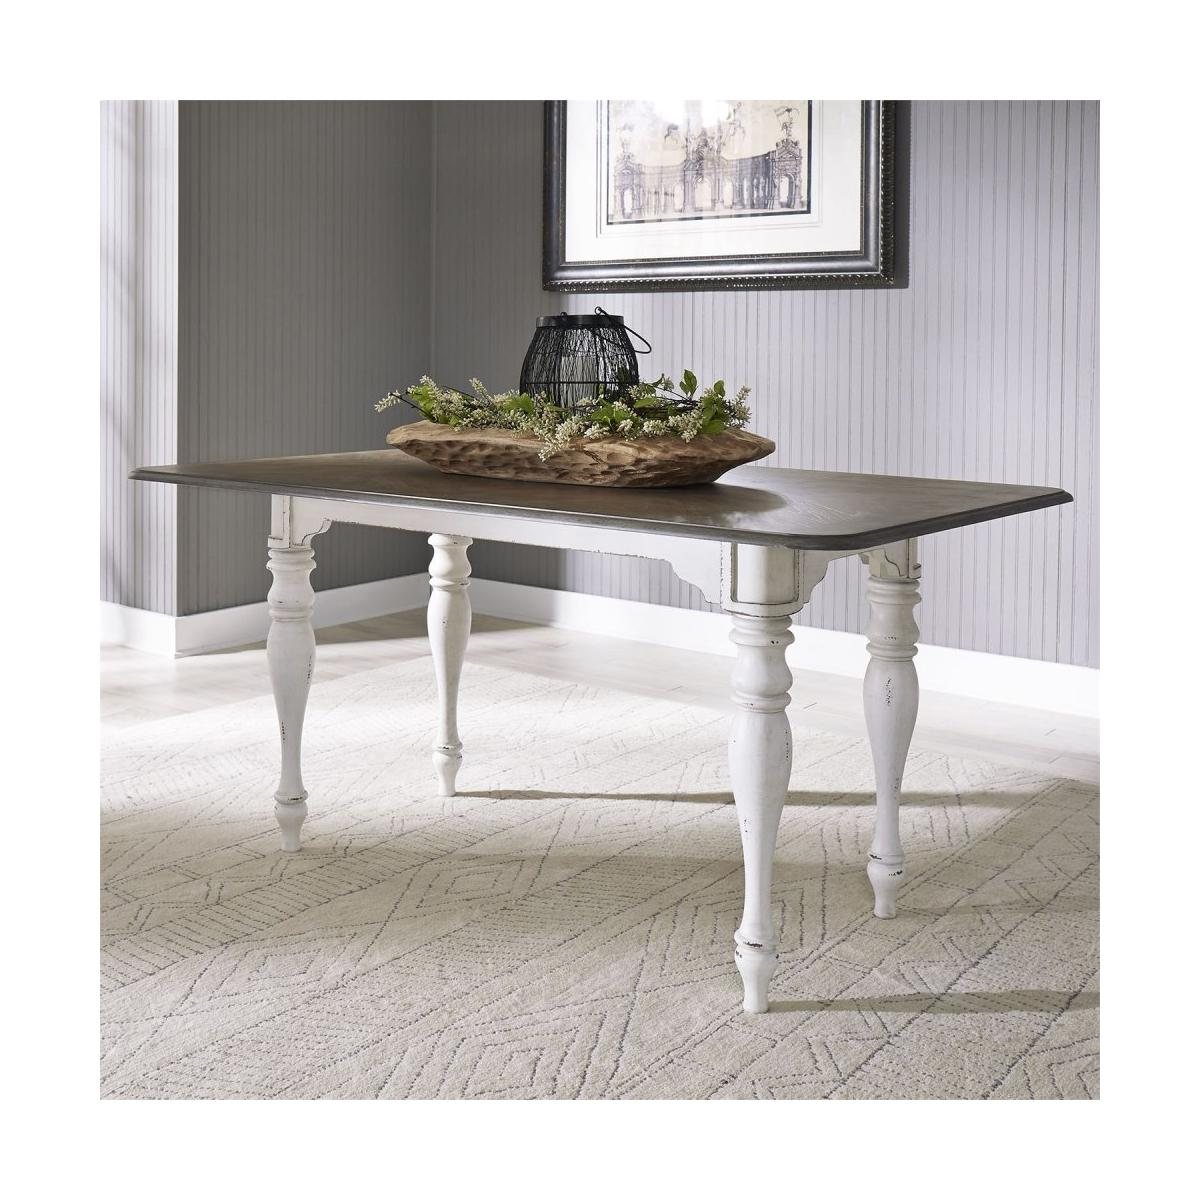 Nook Rectangular Table